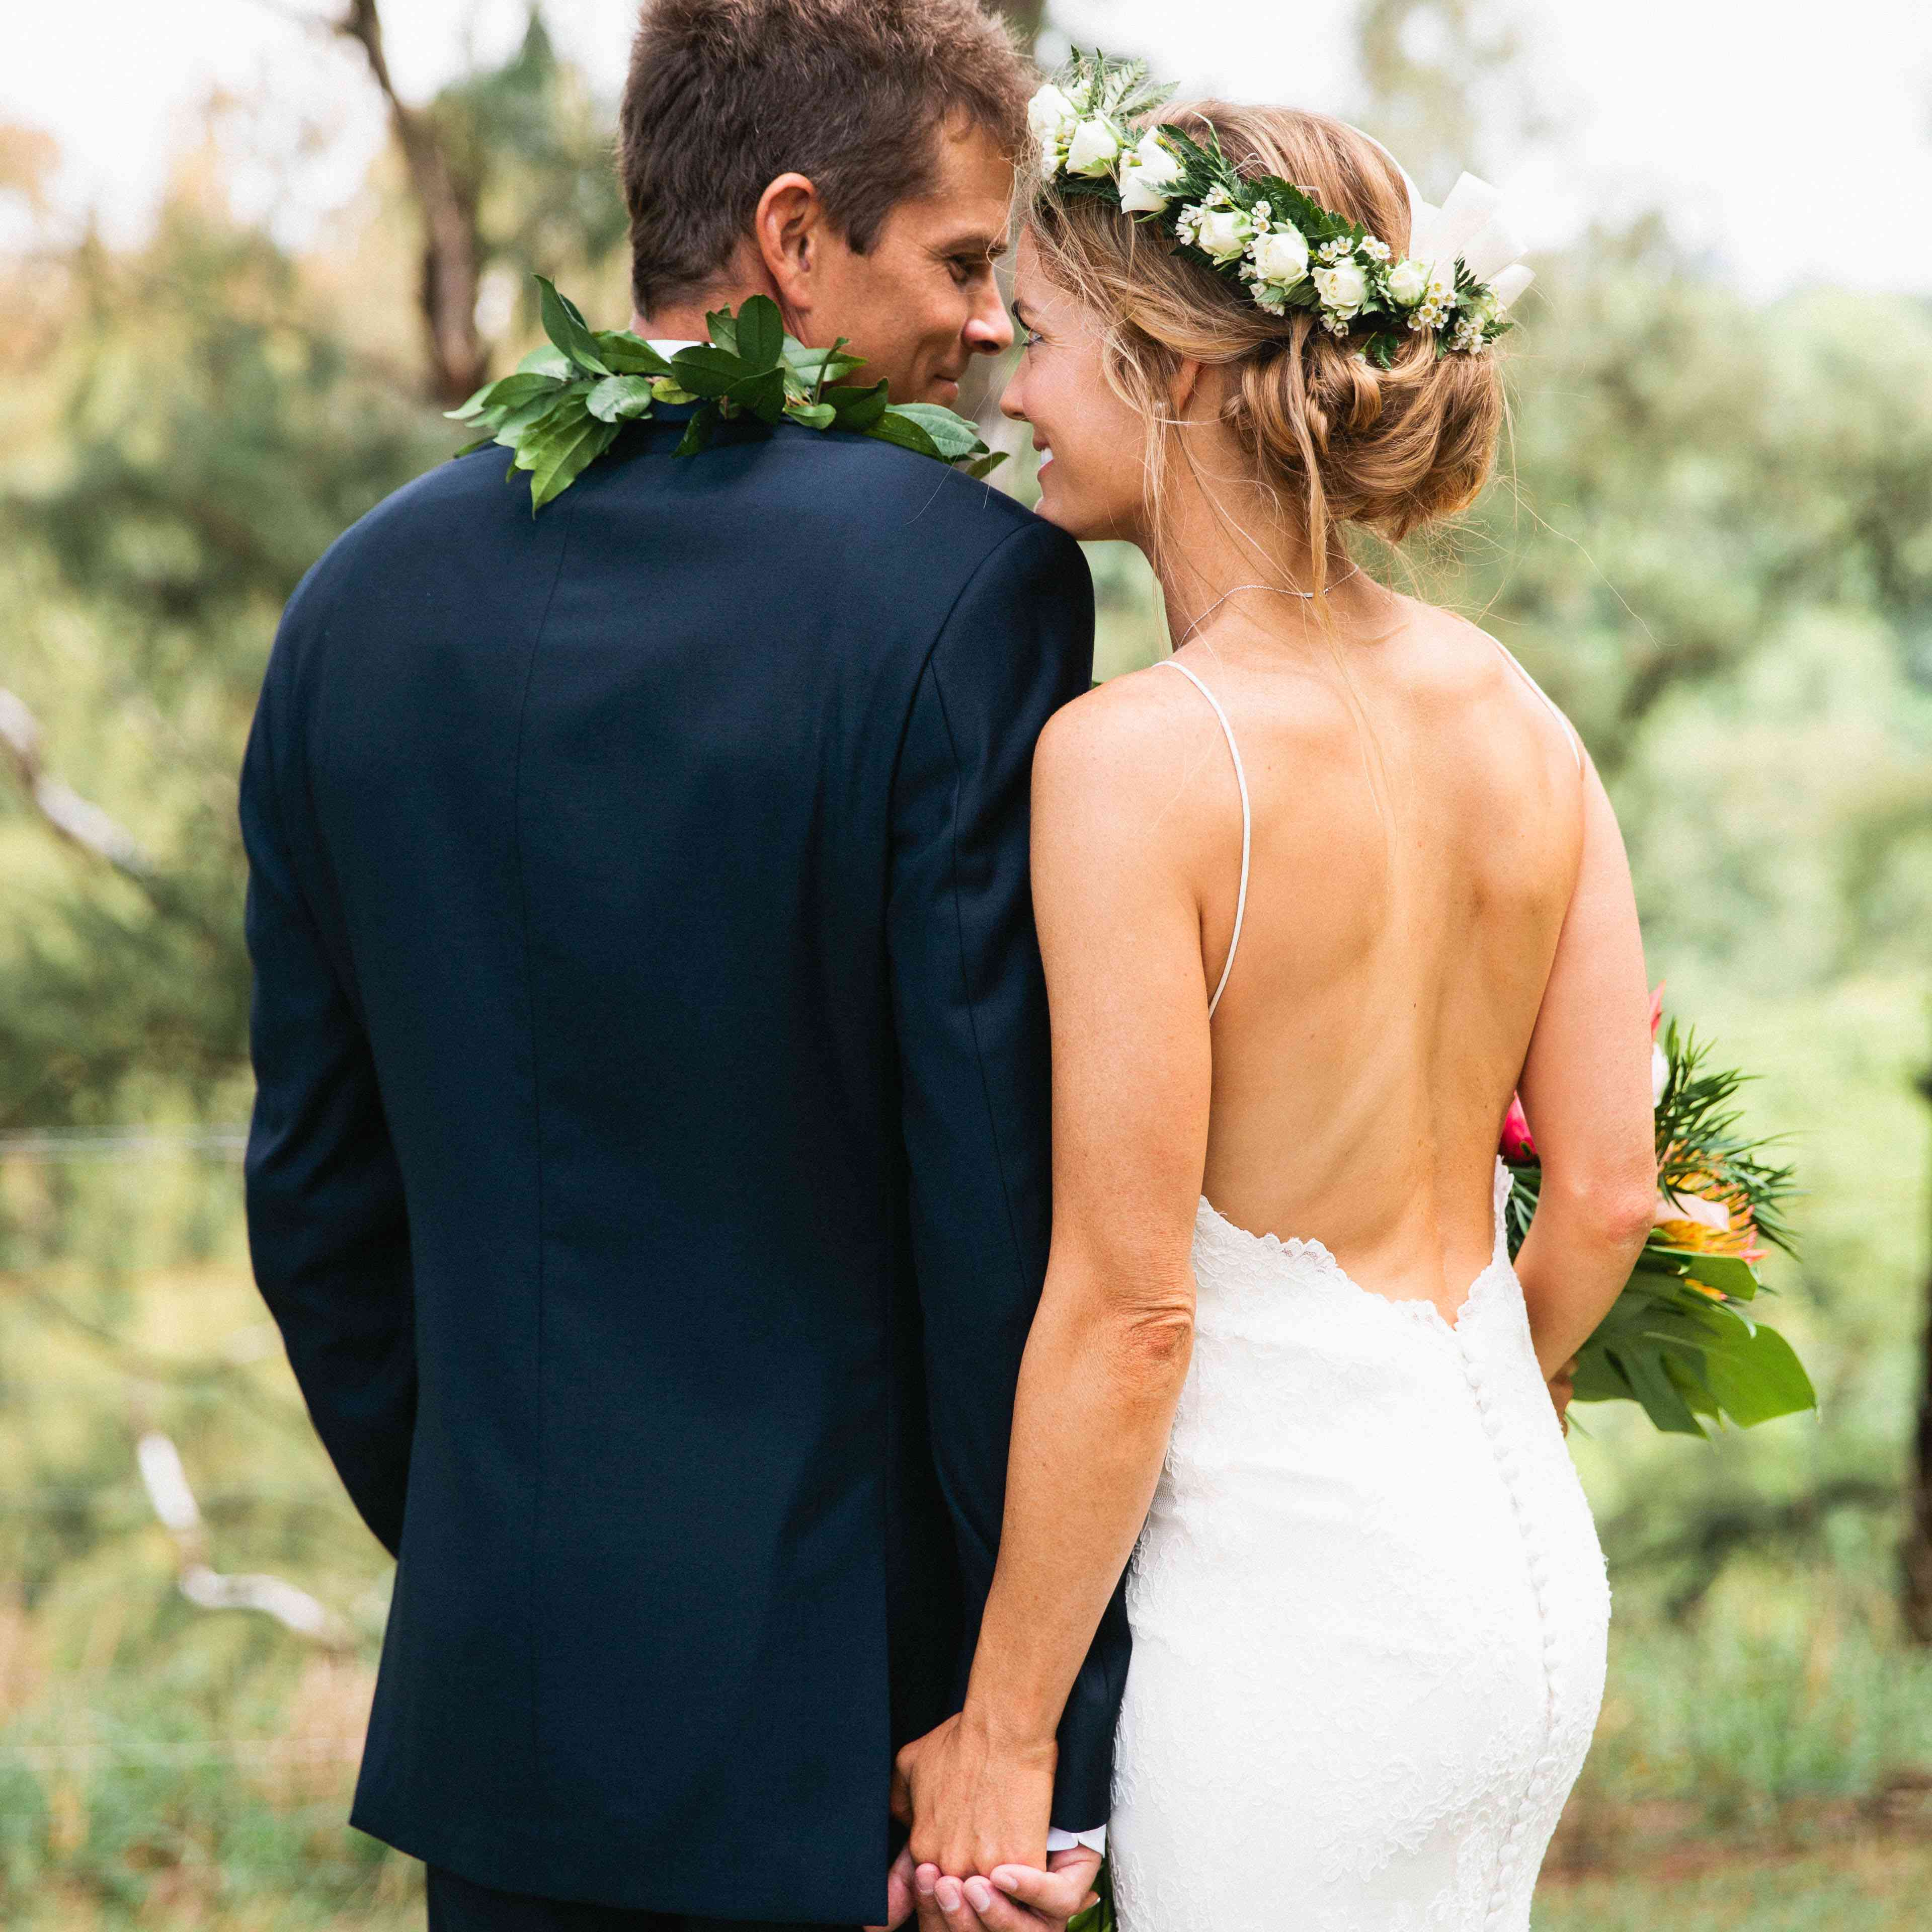 17 Real Brides Who Wore Swoon-Worthy Backless Wedding Dresses